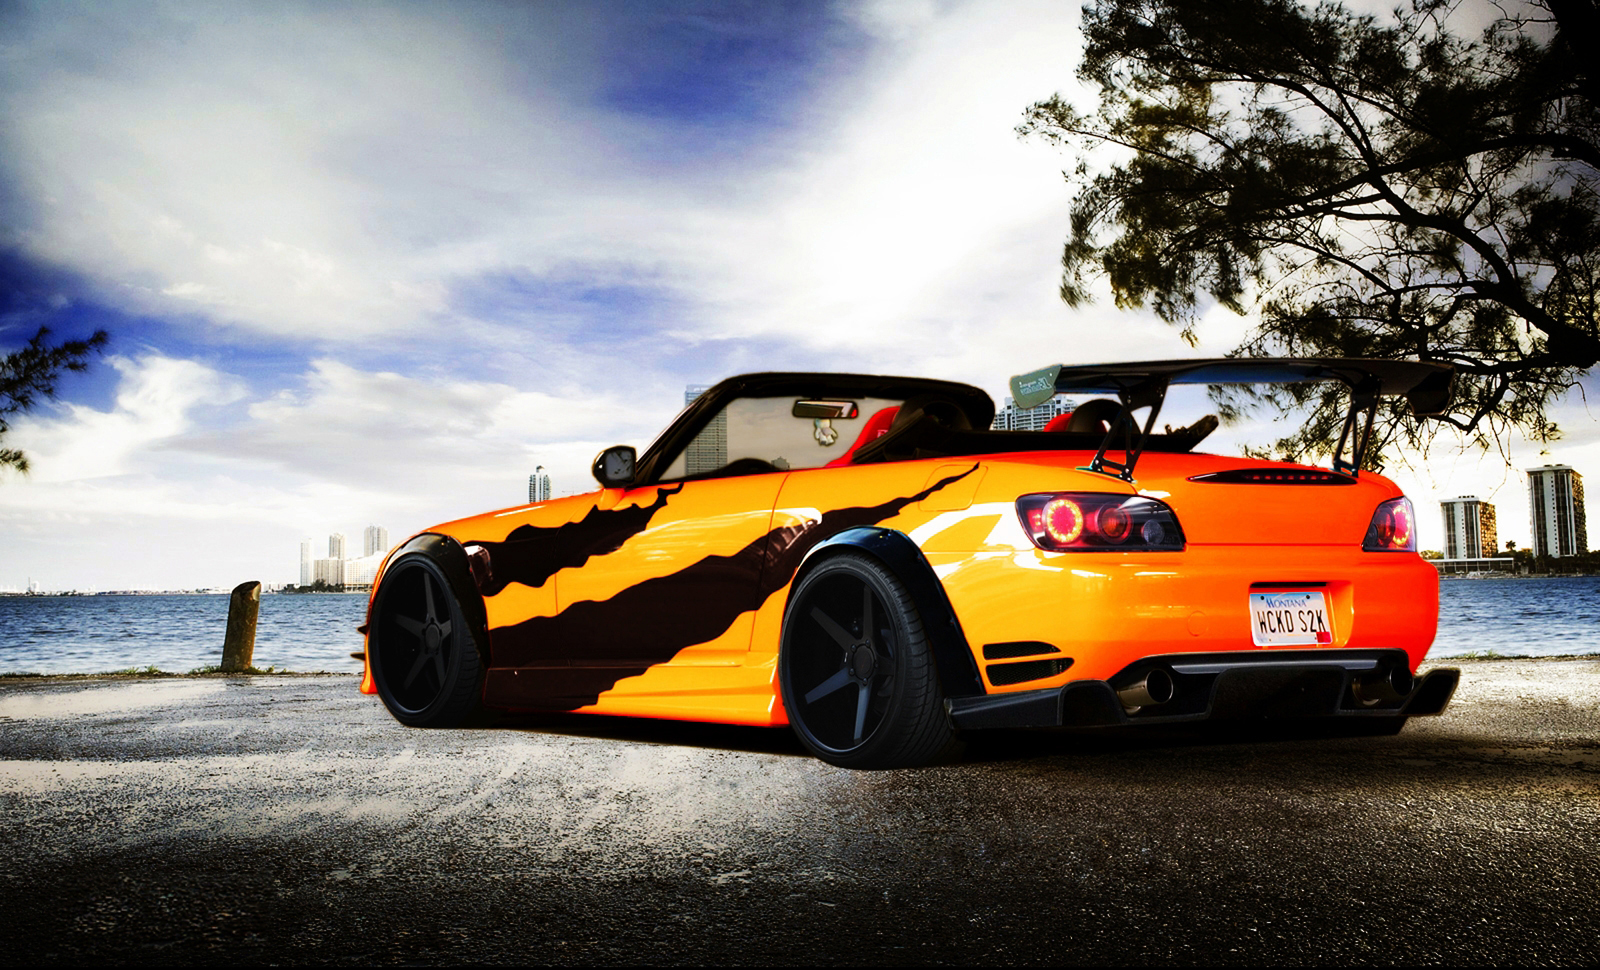 Modified S2000 >> Renato's Profile › Autemo.com › Automotive Design Studio